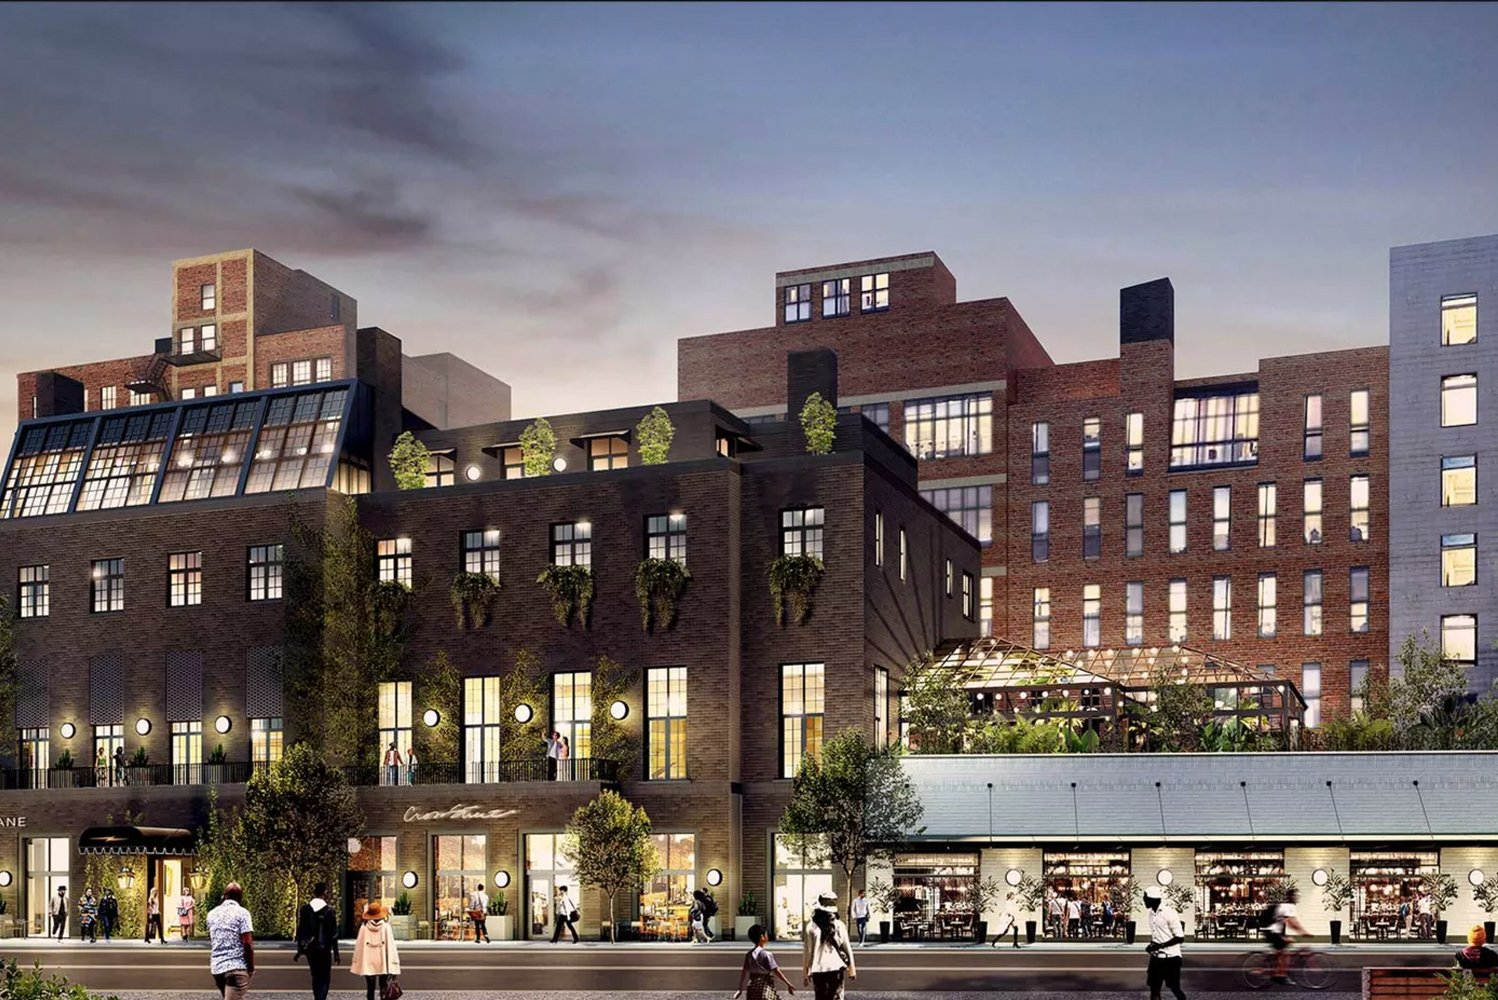 In the design of the property, involved are New York-based Gachot Studios and locally-based Kraemer Design Group, which will serve as the architect of record.